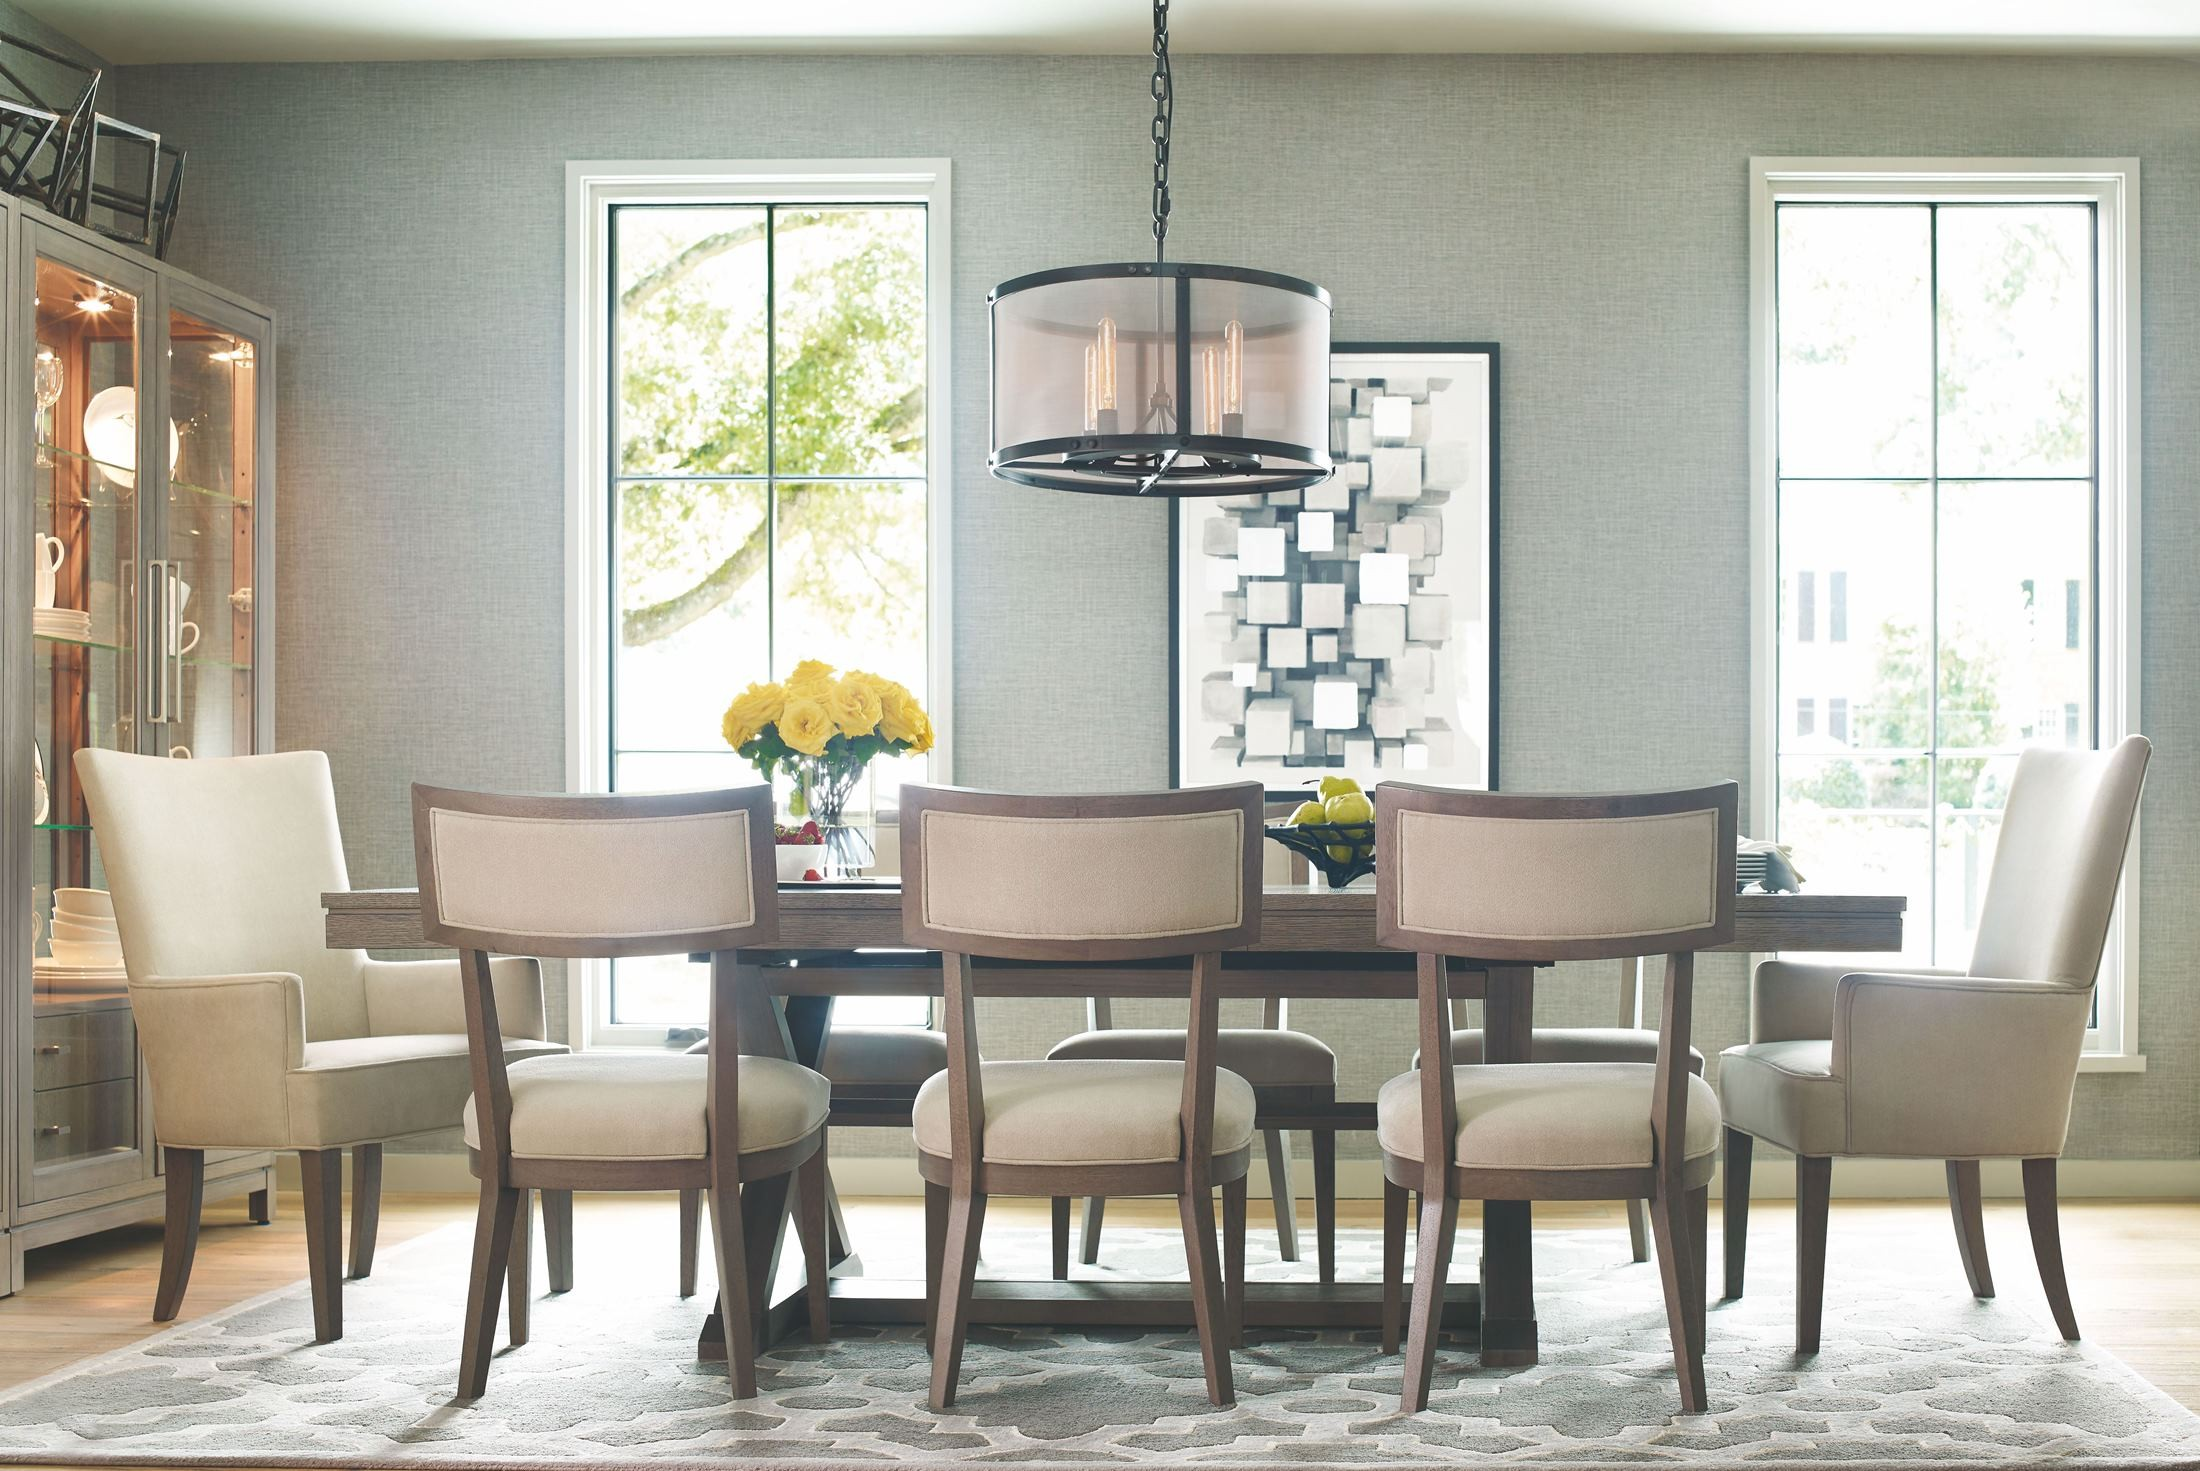 High line greige extendable trestle dining room set from